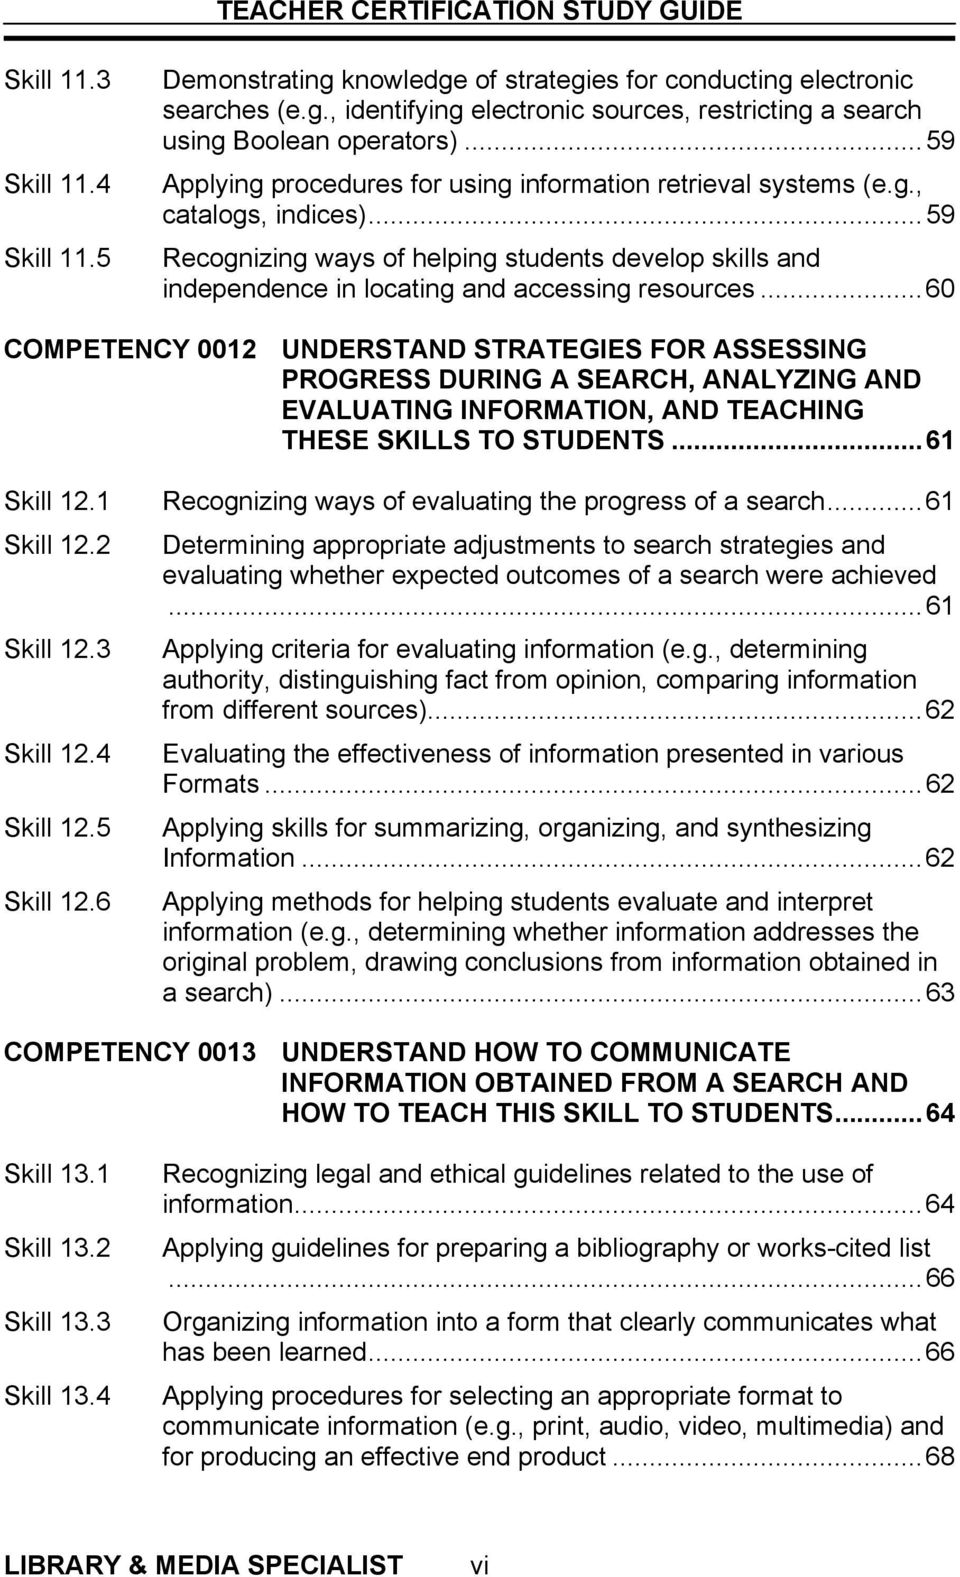 ..60 COMPETENCY 0012 UNDERSTAND STRATEGIES FOR ASSESSING PROGRESS DURING A SEARCH, ANALYZING AND EVALUATING INFORMATION, AND TEACHING THESE SKILLS TO STUDENTS...61 Skill 12.1 Skill 12.2 Skill 12.